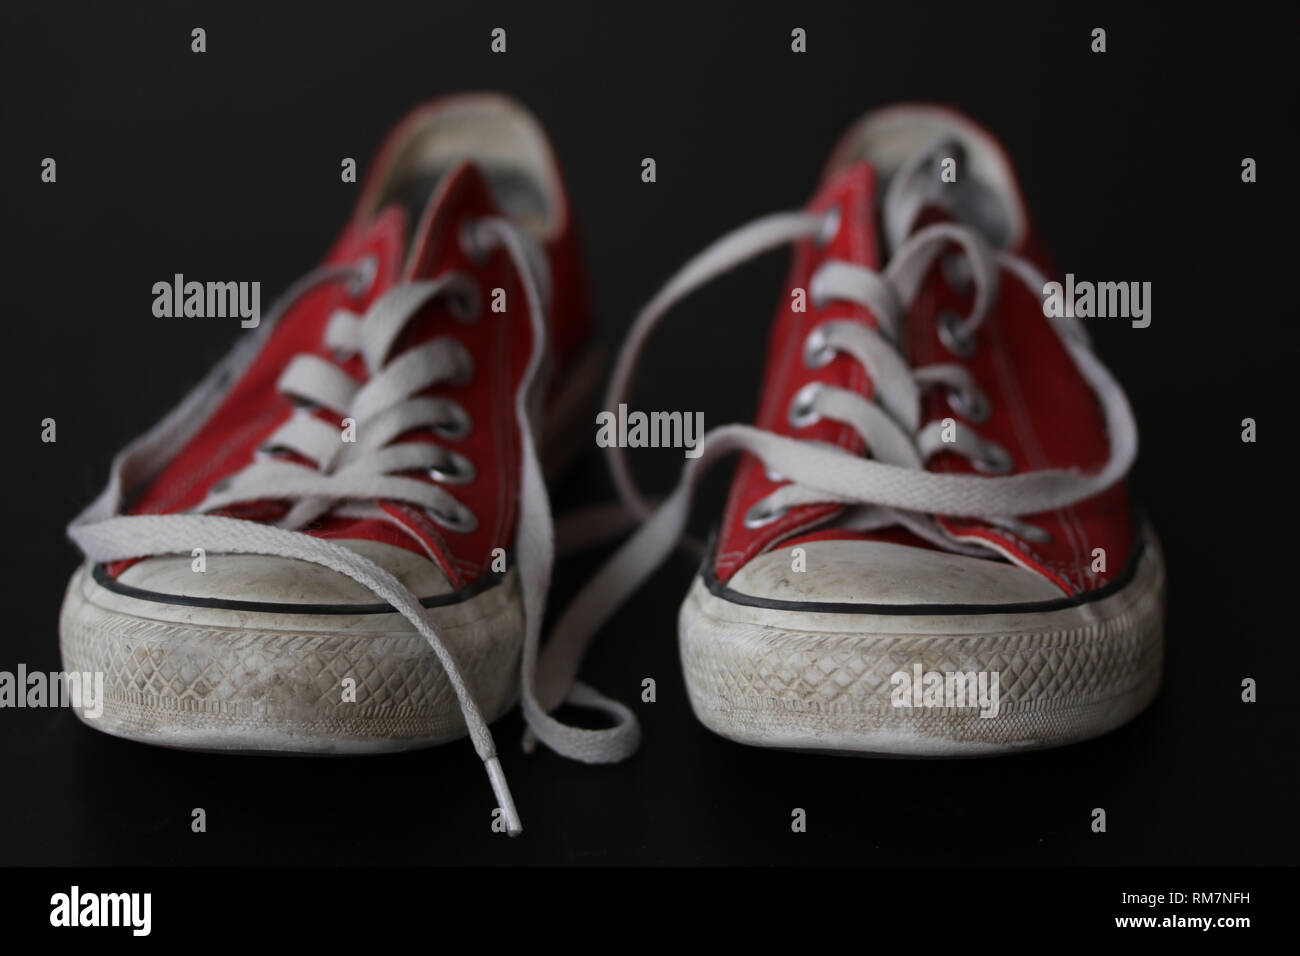 Close up of pair of sneakers - red and white vintage worn out shoes - youth hipster shoes on black background with select focus. - Stock Image